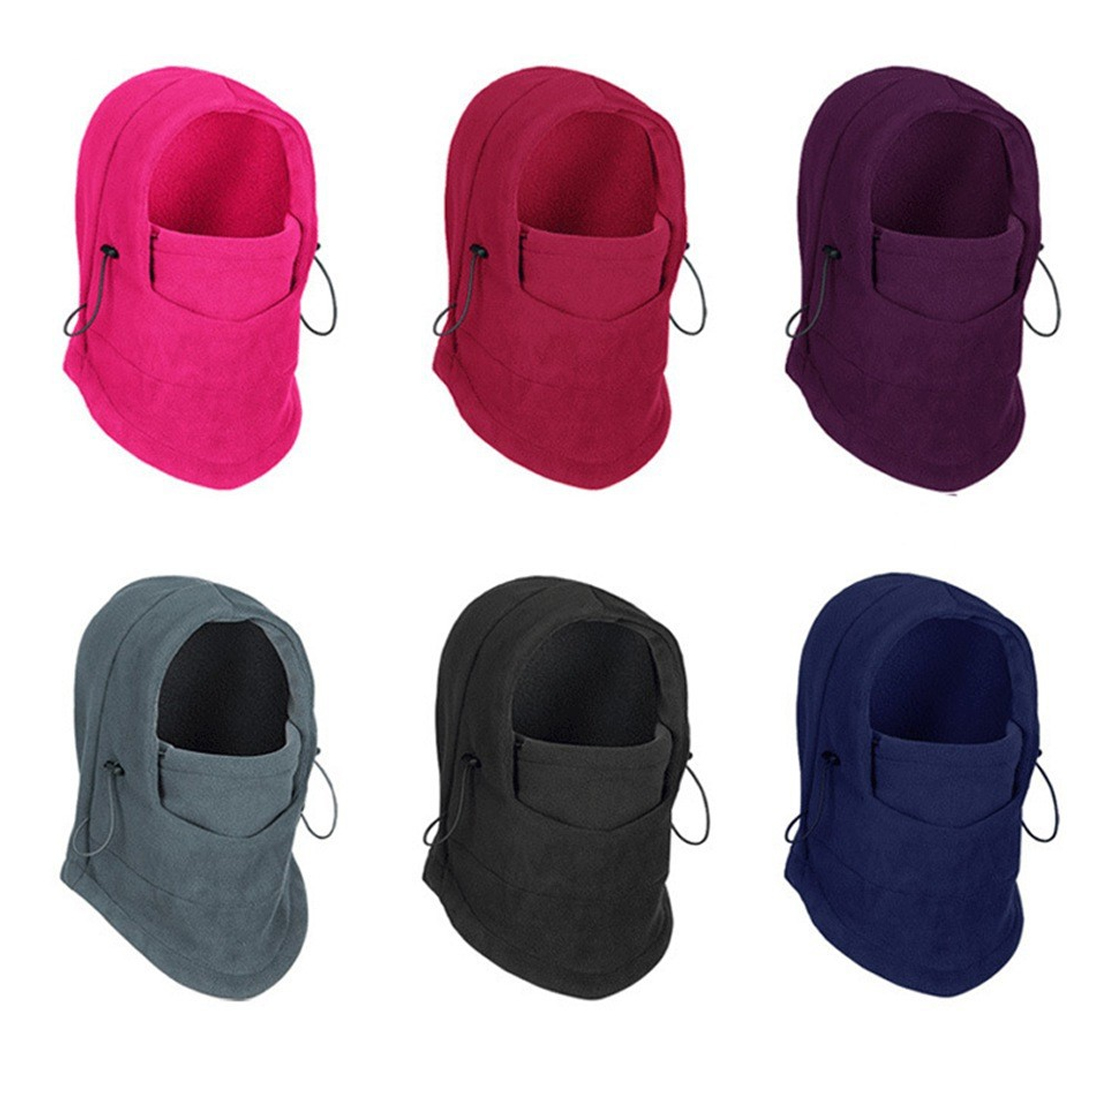 Winter Warm Fleece Hats For Bandana Neck Warmer Balaclava Snowboard Face Mask, Special Forces Mask Thicker Caps